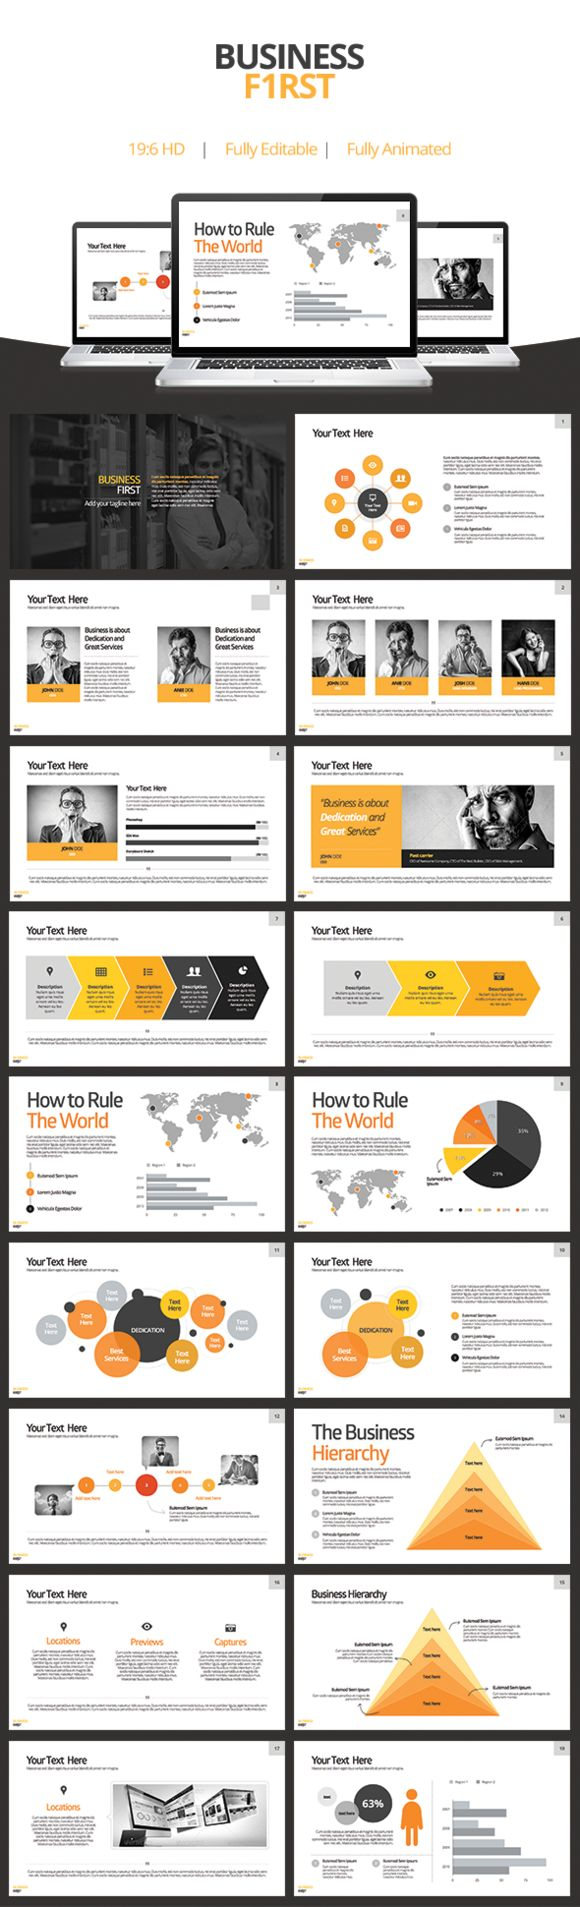 Business First - Keynote Template by Slidehack on Creative Market